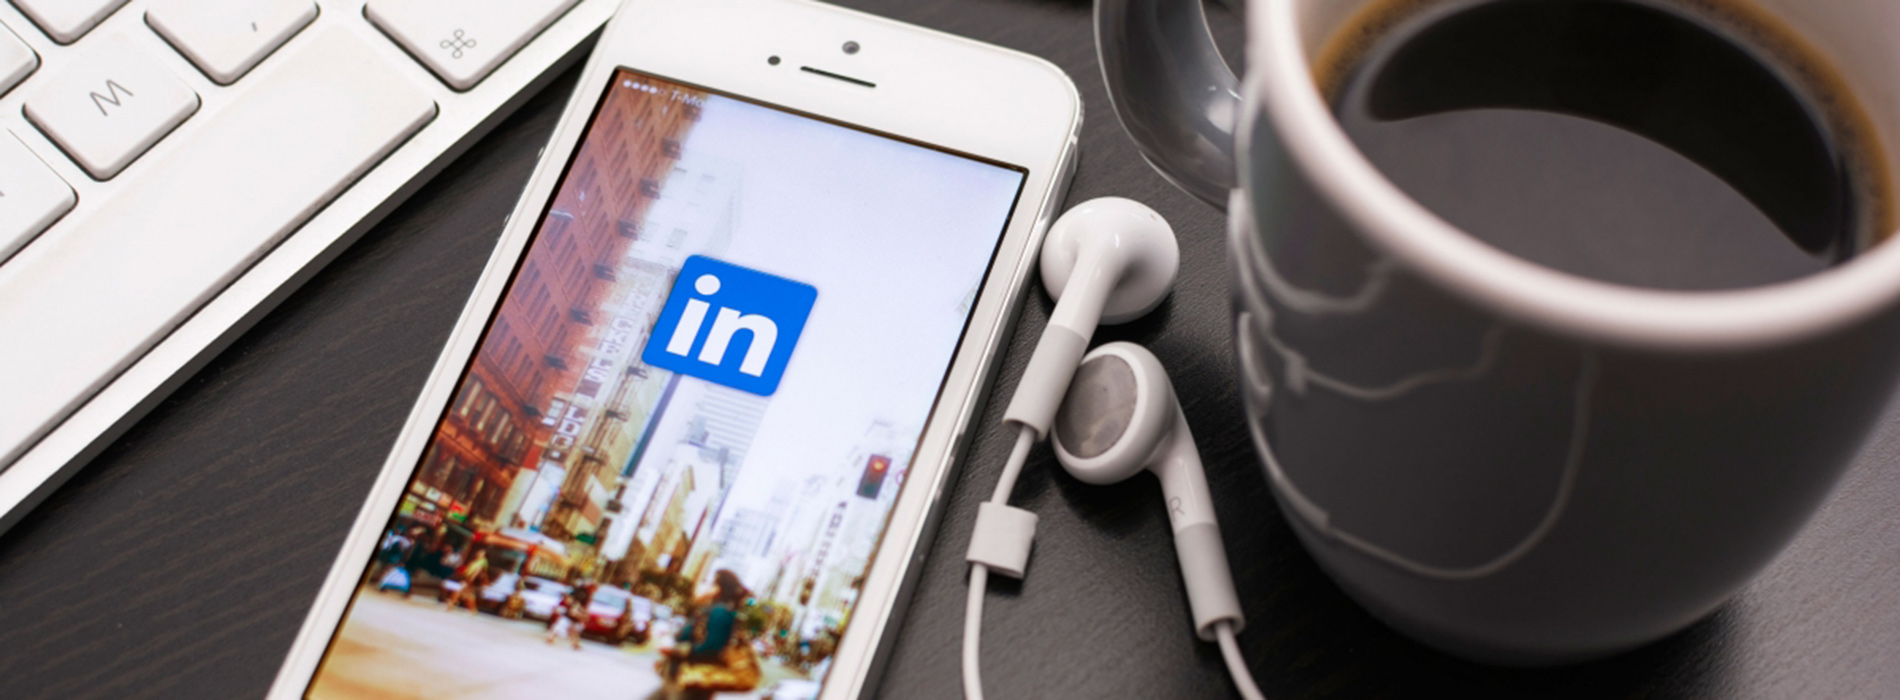 LinkedIn on a mobile phone